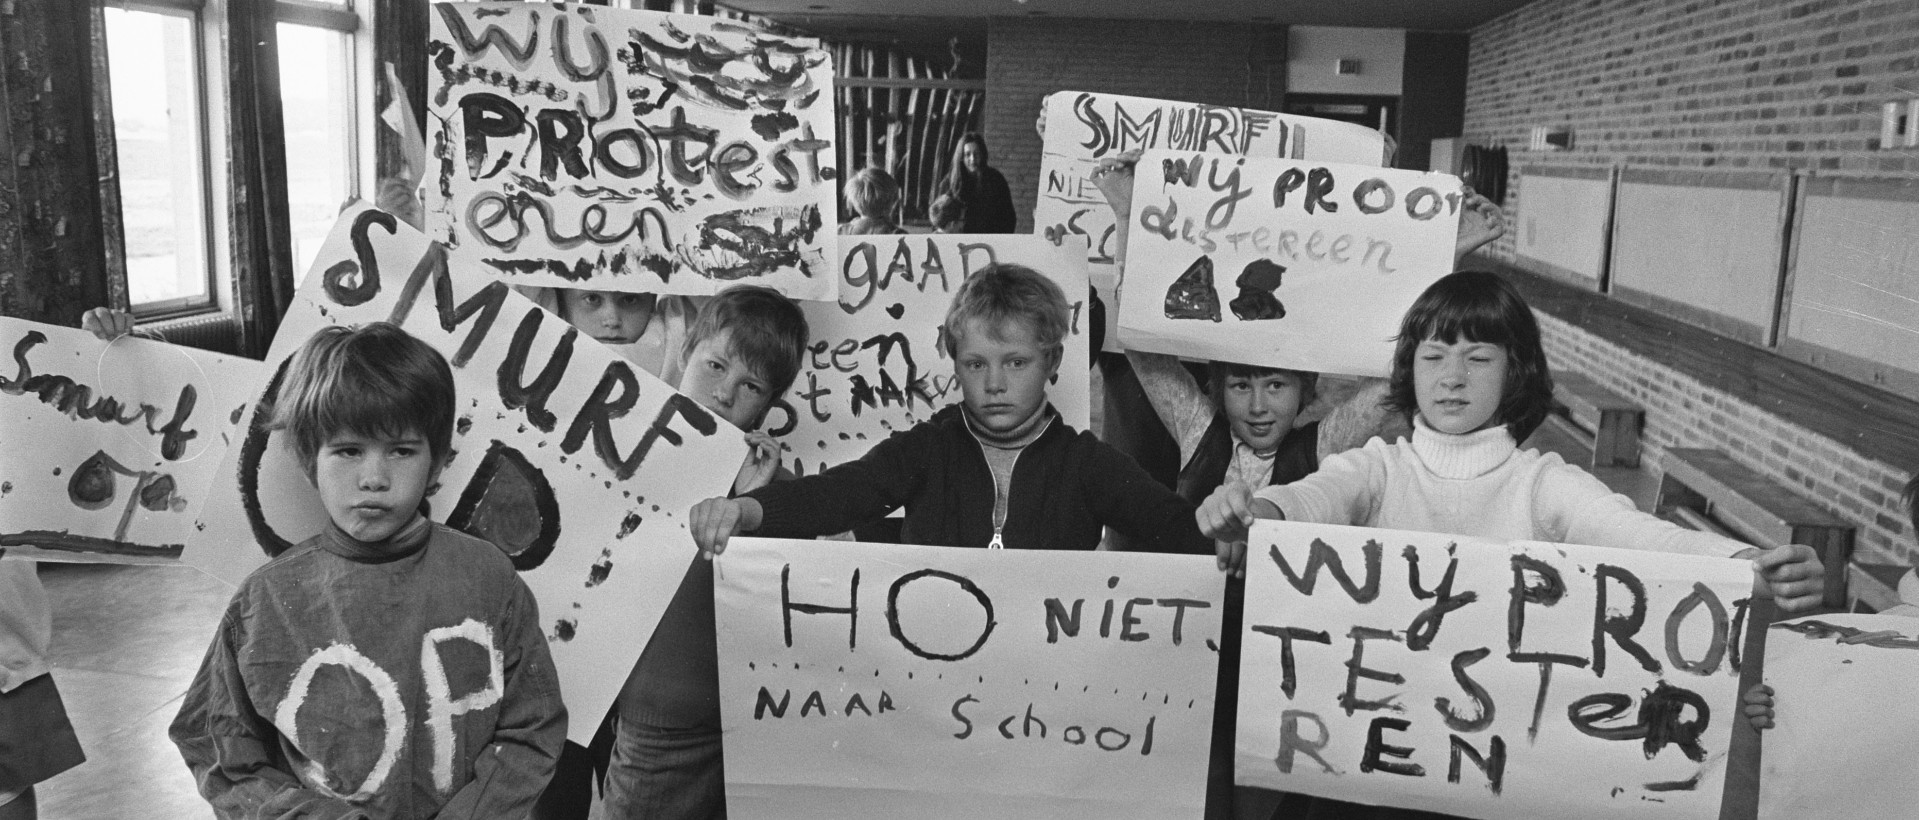 22 mei 1970. Schoolstaking in Amsterdam